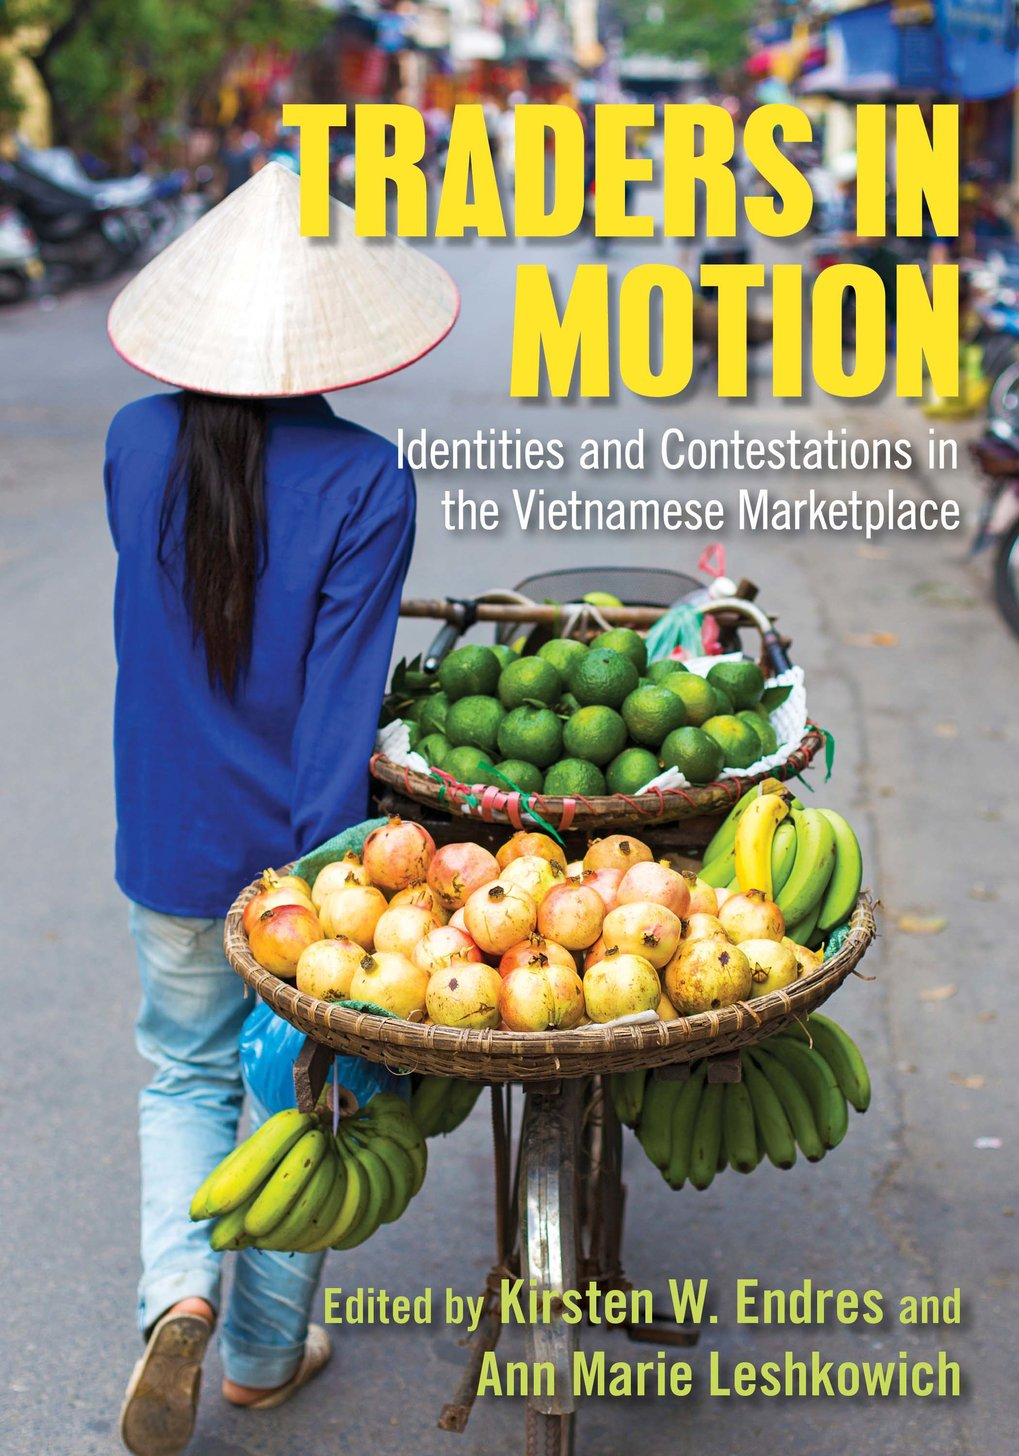 Traders in motion. Identities and contestations in the Vietnamese marketplace